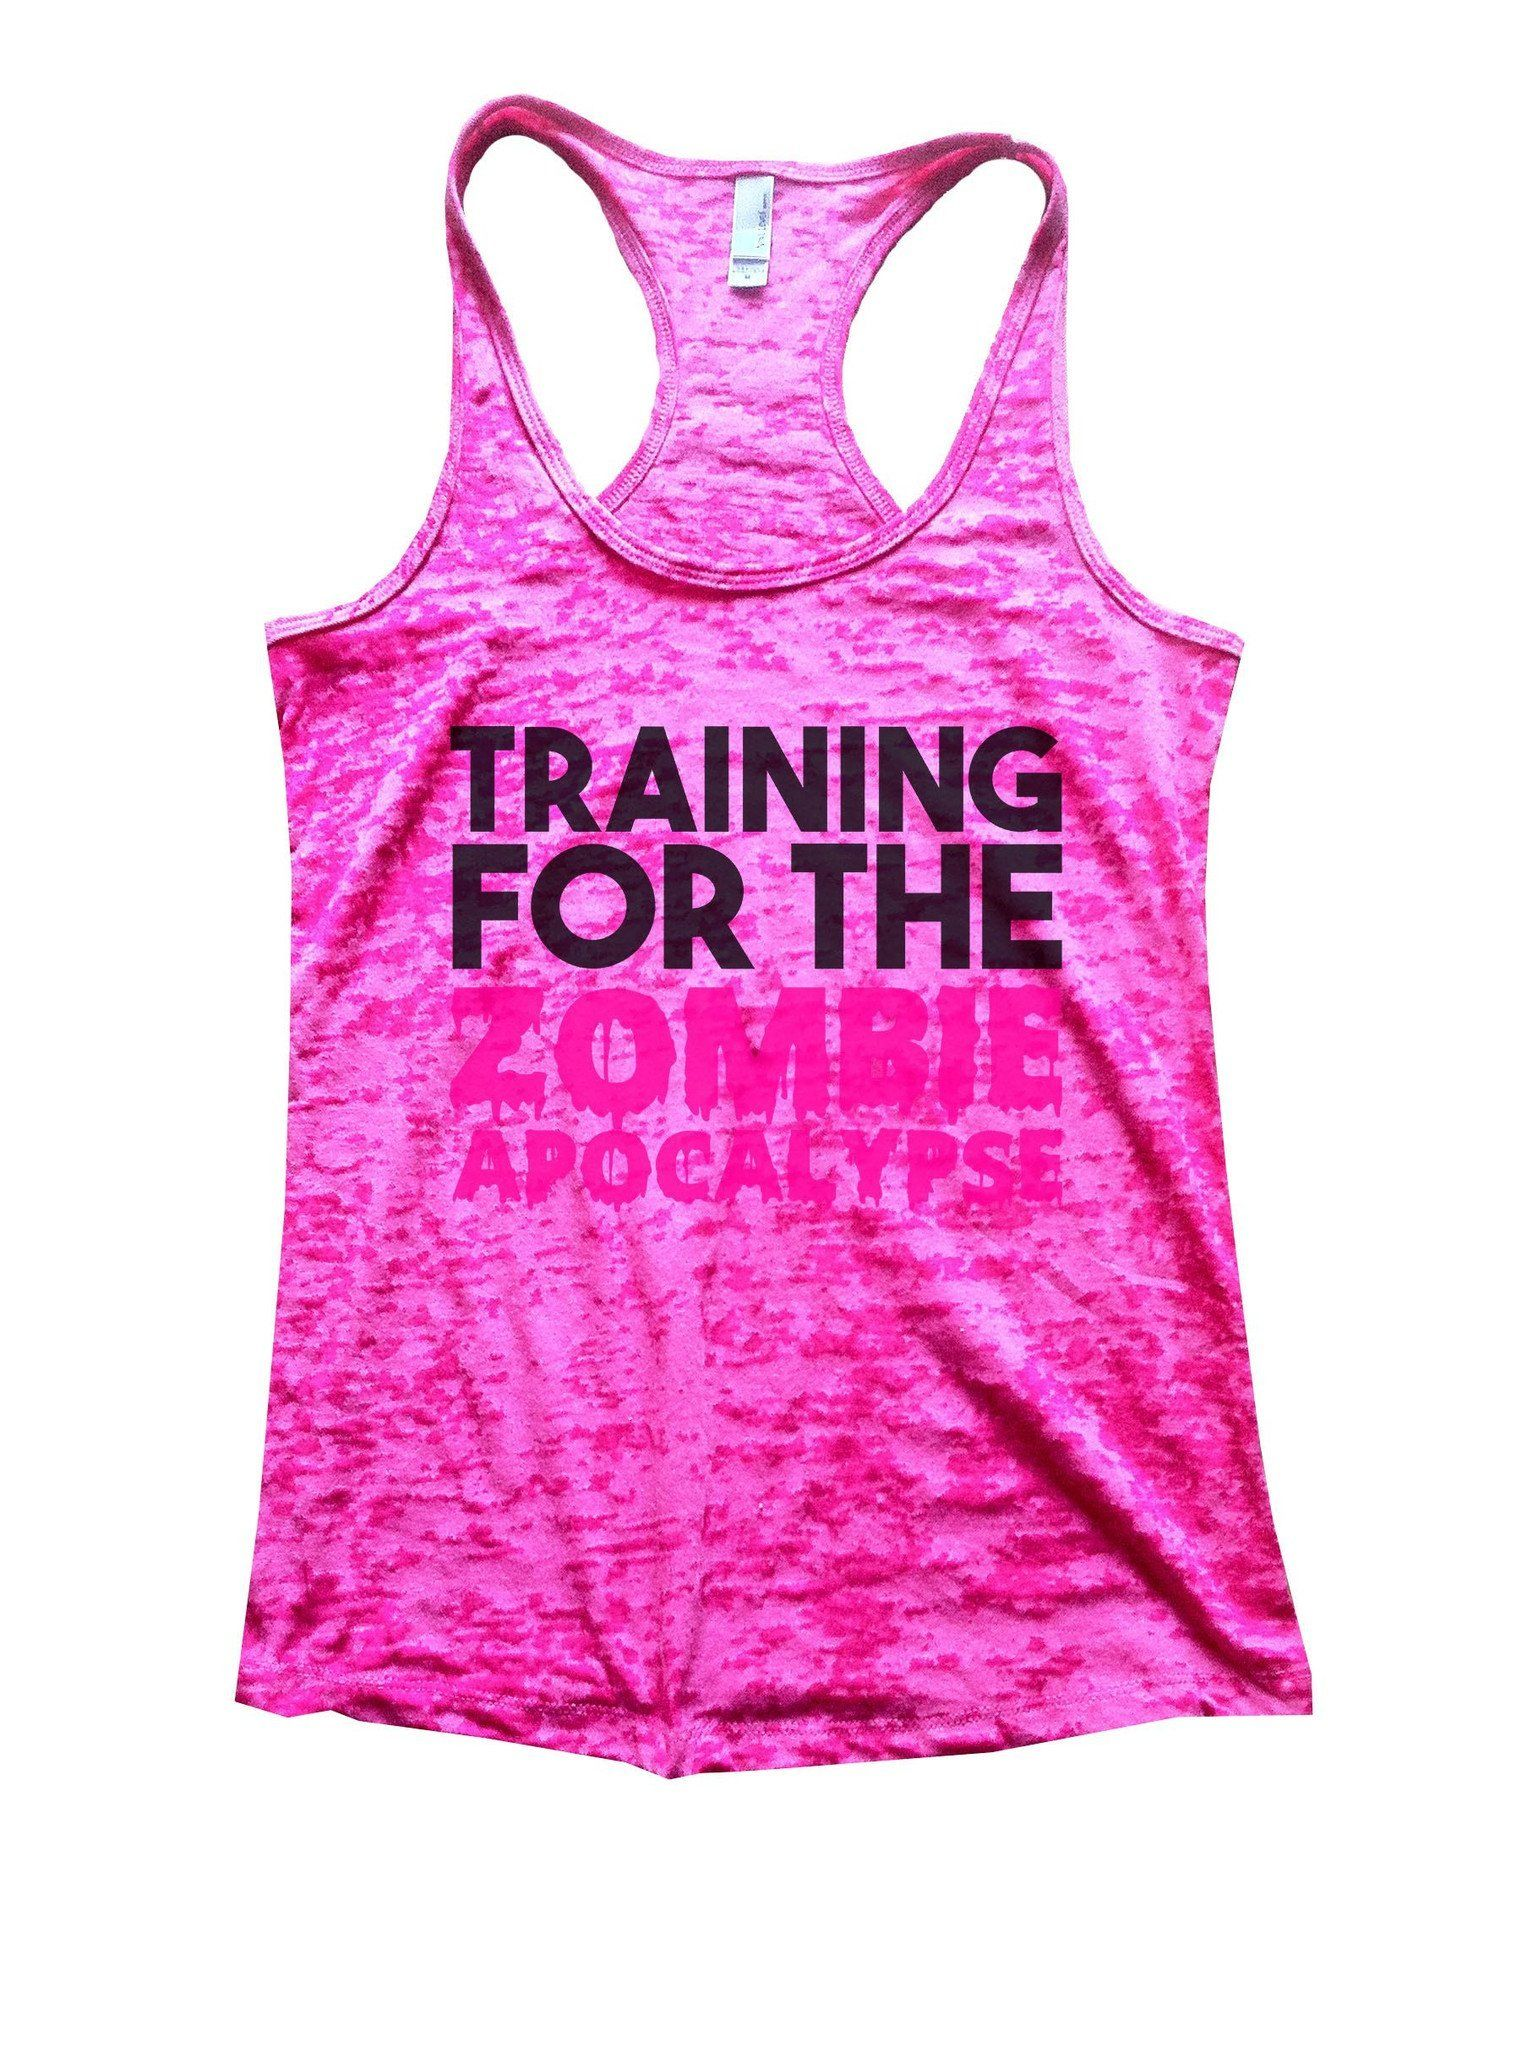 Training For The Zombie Apocalypse Burnout Tank Top By Funny Threadz